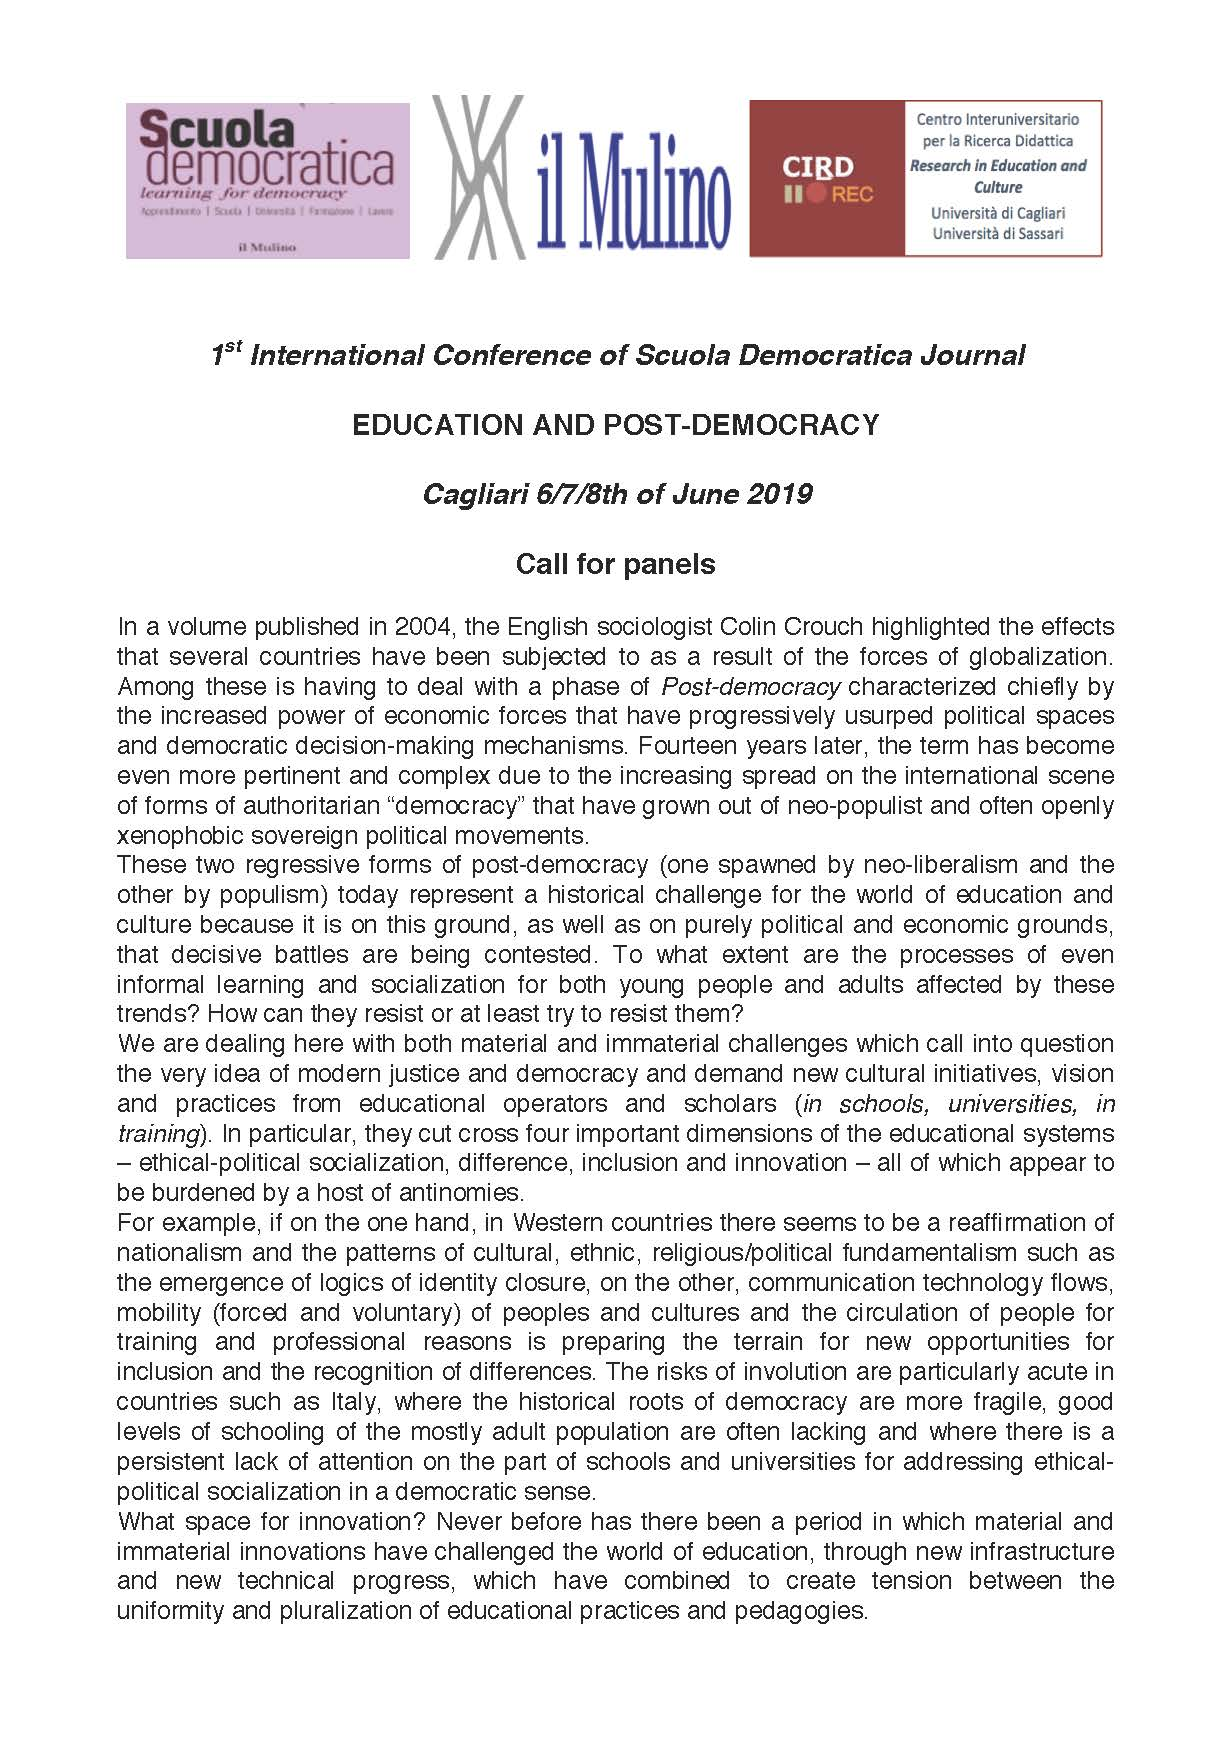 "Call for Panel ""1° International Conference of Scuola Democratica Journal. Education and Post-Democracy"" – 6-8 giugno 2019, Cagliari"